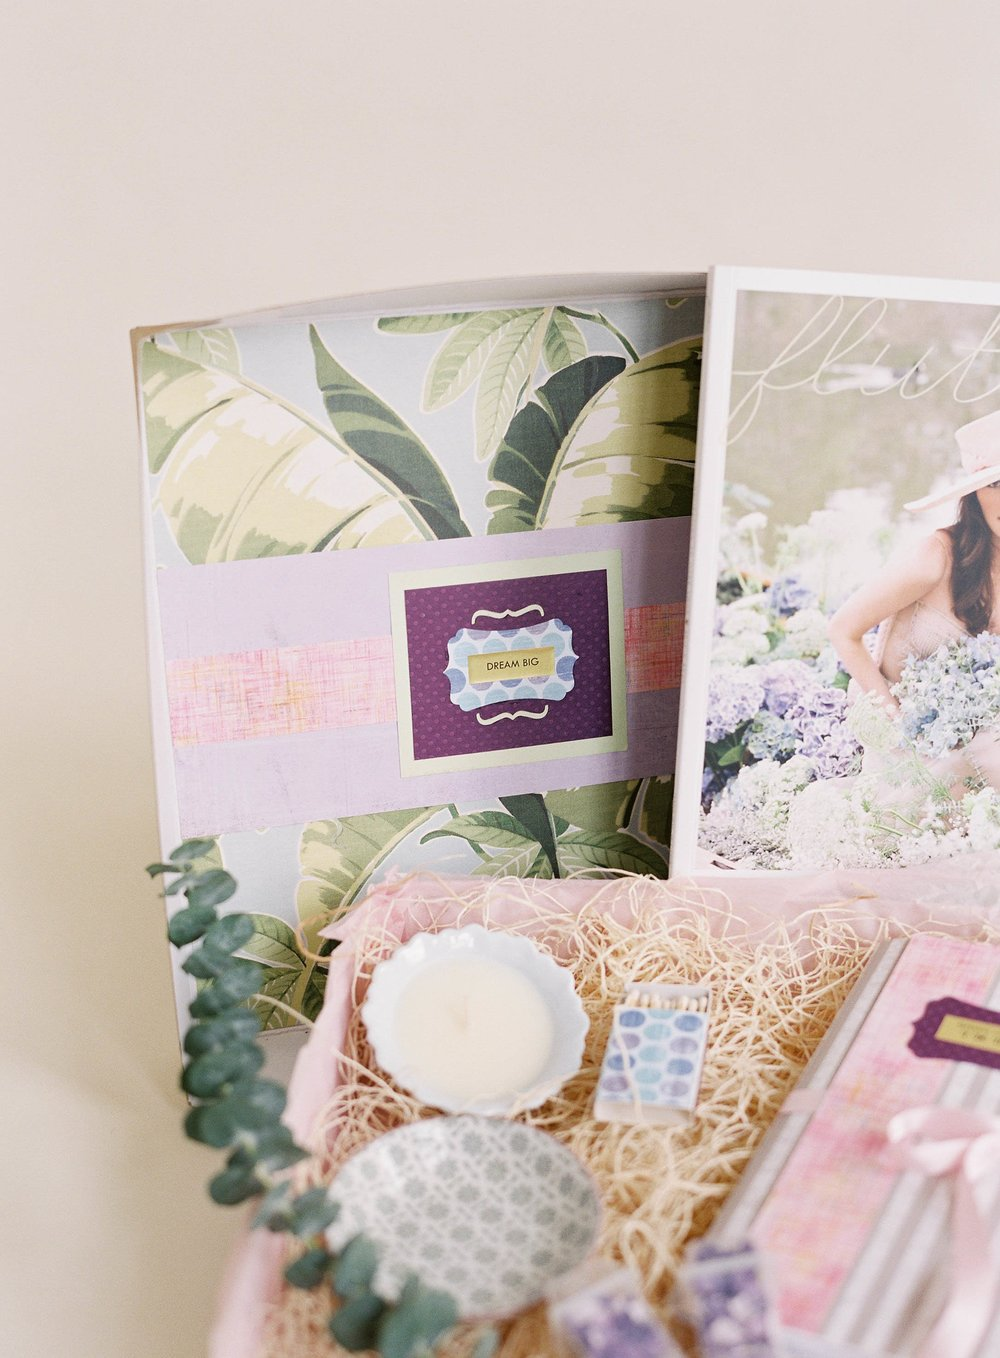 Dream Big Engagement Gift Box by Gilded Gifts photo 4.jpg